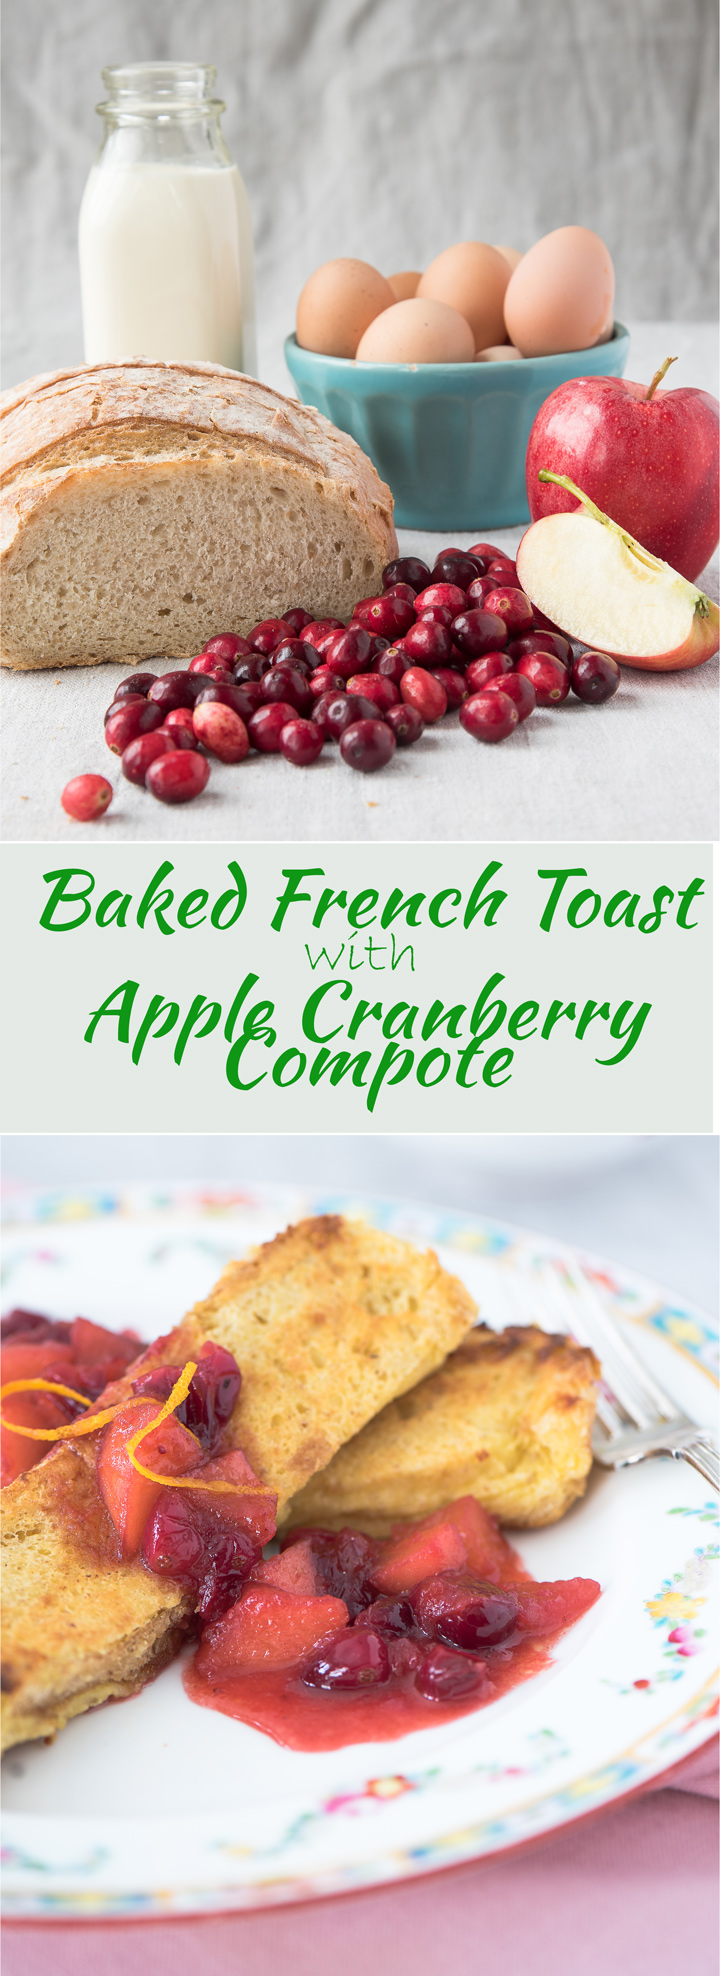 Baked French Toast with Apple Cranberry Compote recipe. Baked french toast recipe and topped with an apple cranberry compote. Soak the french toast overnight then bake them in the oven while you make the fruit compote. A festive breakfast the for holiday season.